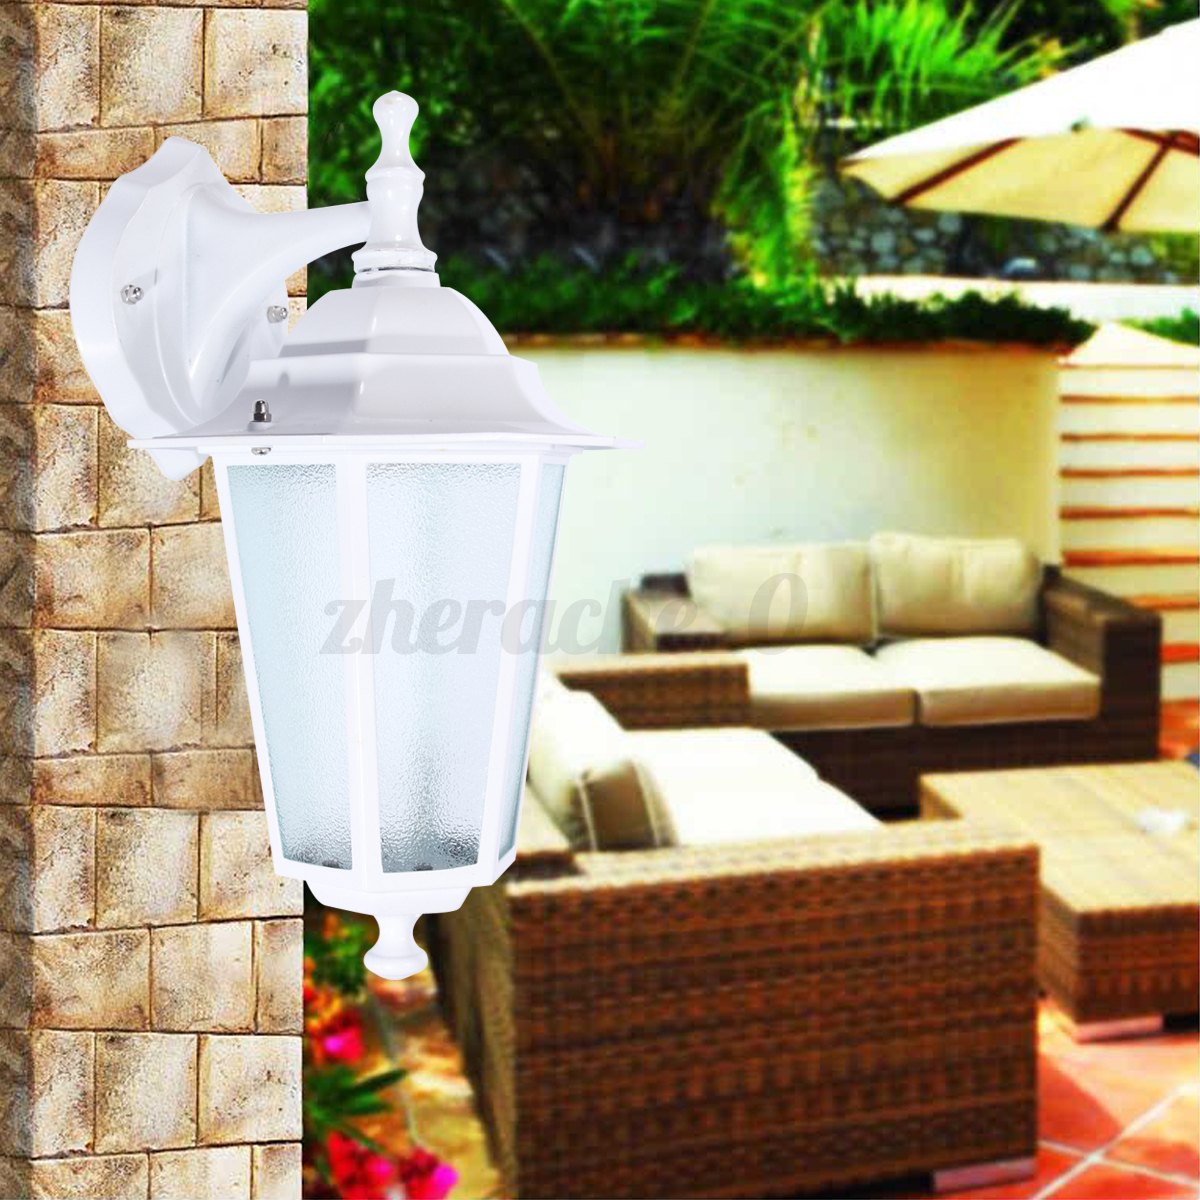 Aluminum-Glass-Wall-Light-Fixture-Exterior-Lantern-Outdoor-Garden-Lamp-Decor